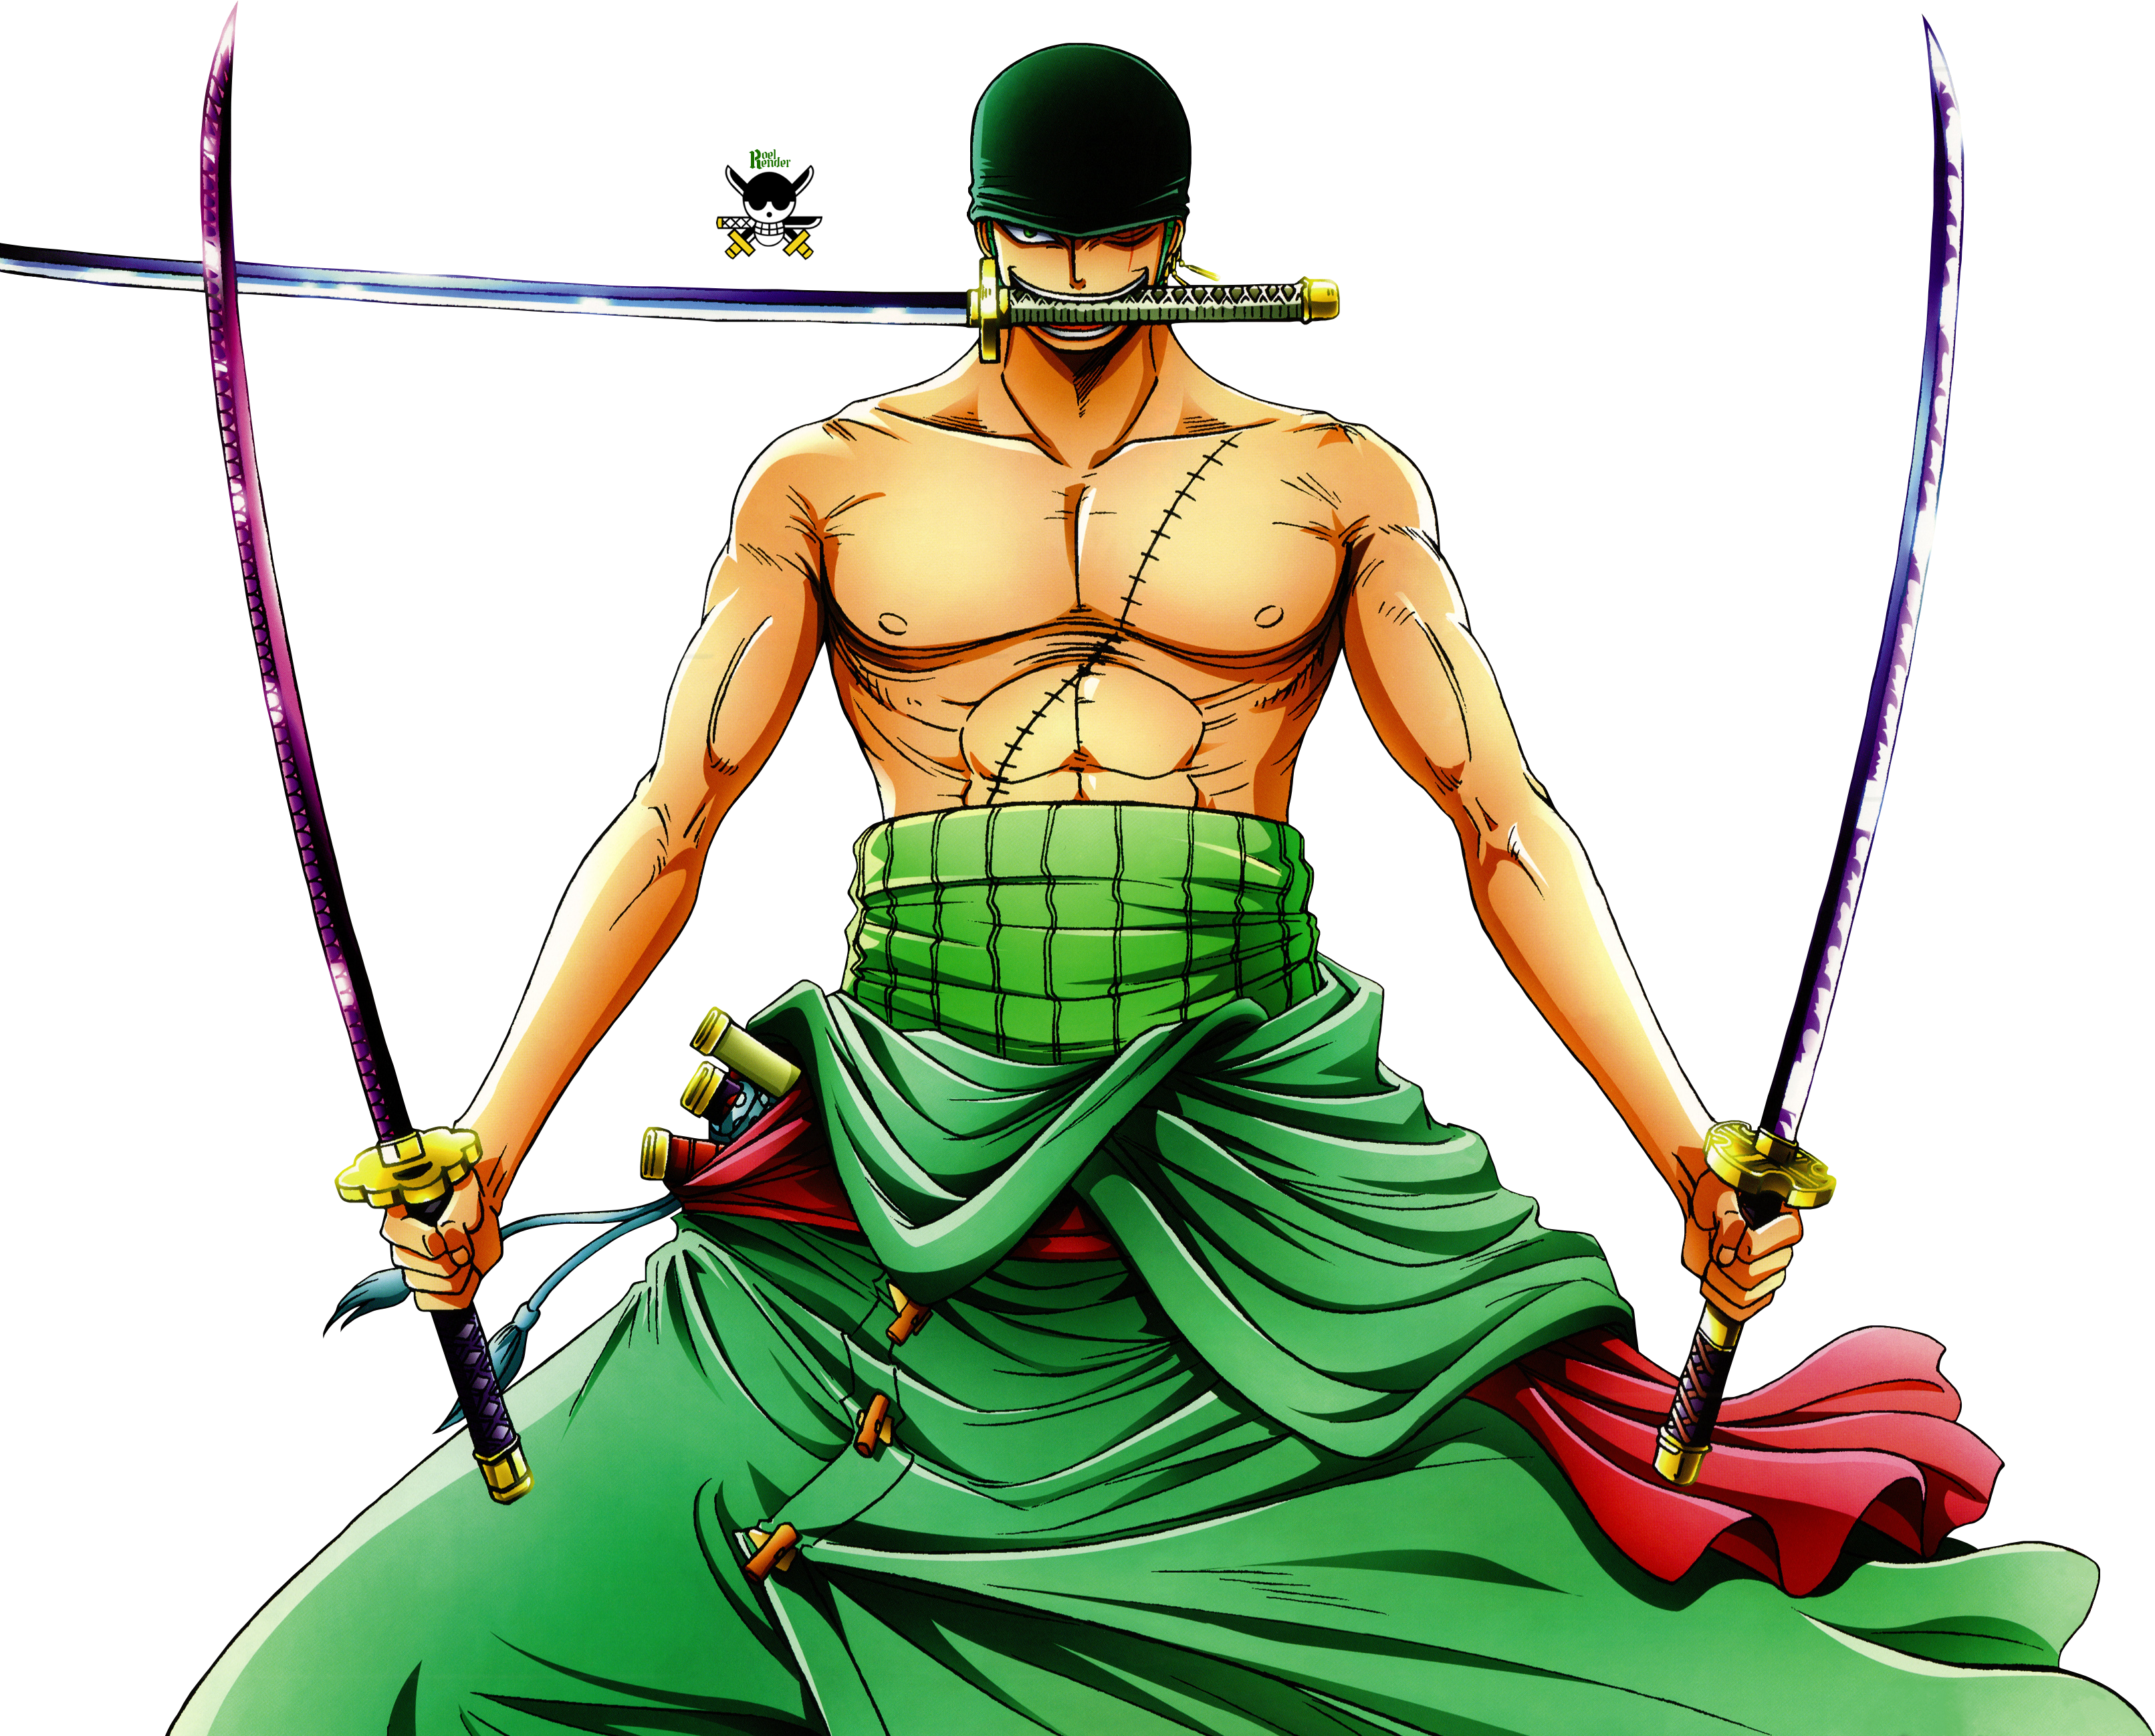 The power of zoro hd wallpaper background image 3223x2596 id 857799 wallpaper abyss - Zoro one piece dessin ...